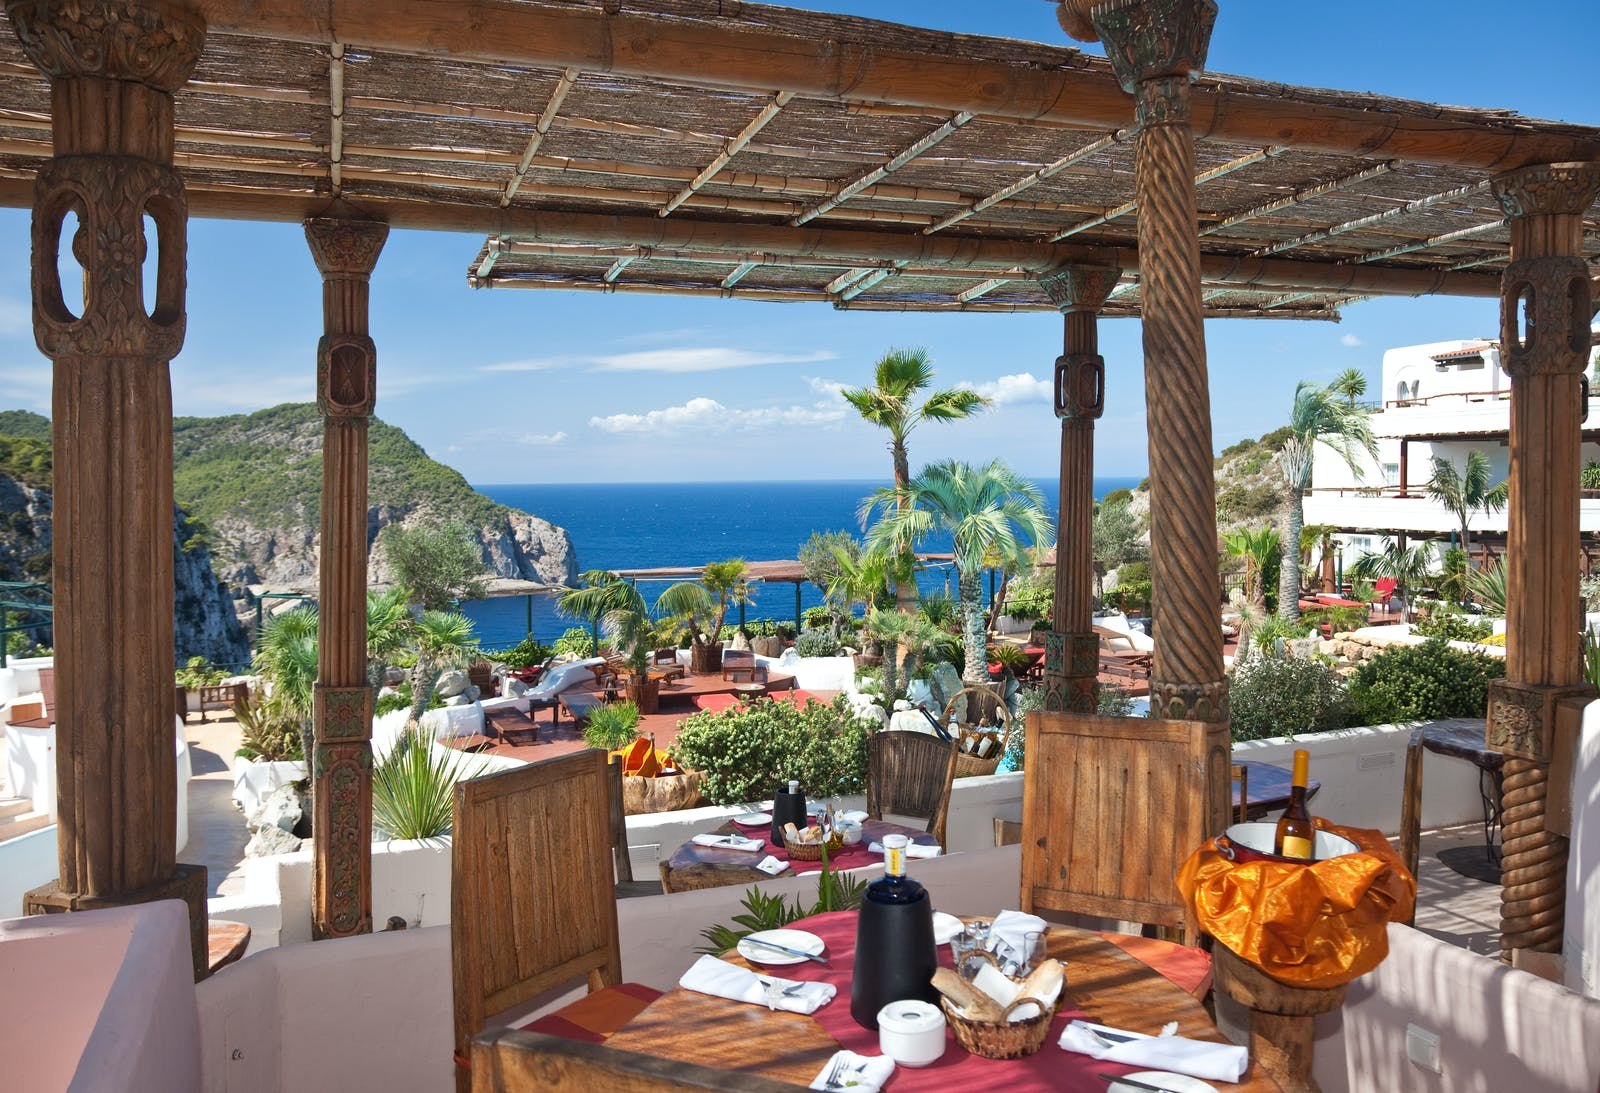 Restaurant Terrace at Hotel Hacienda Na Xamena, Ibiza, Spain